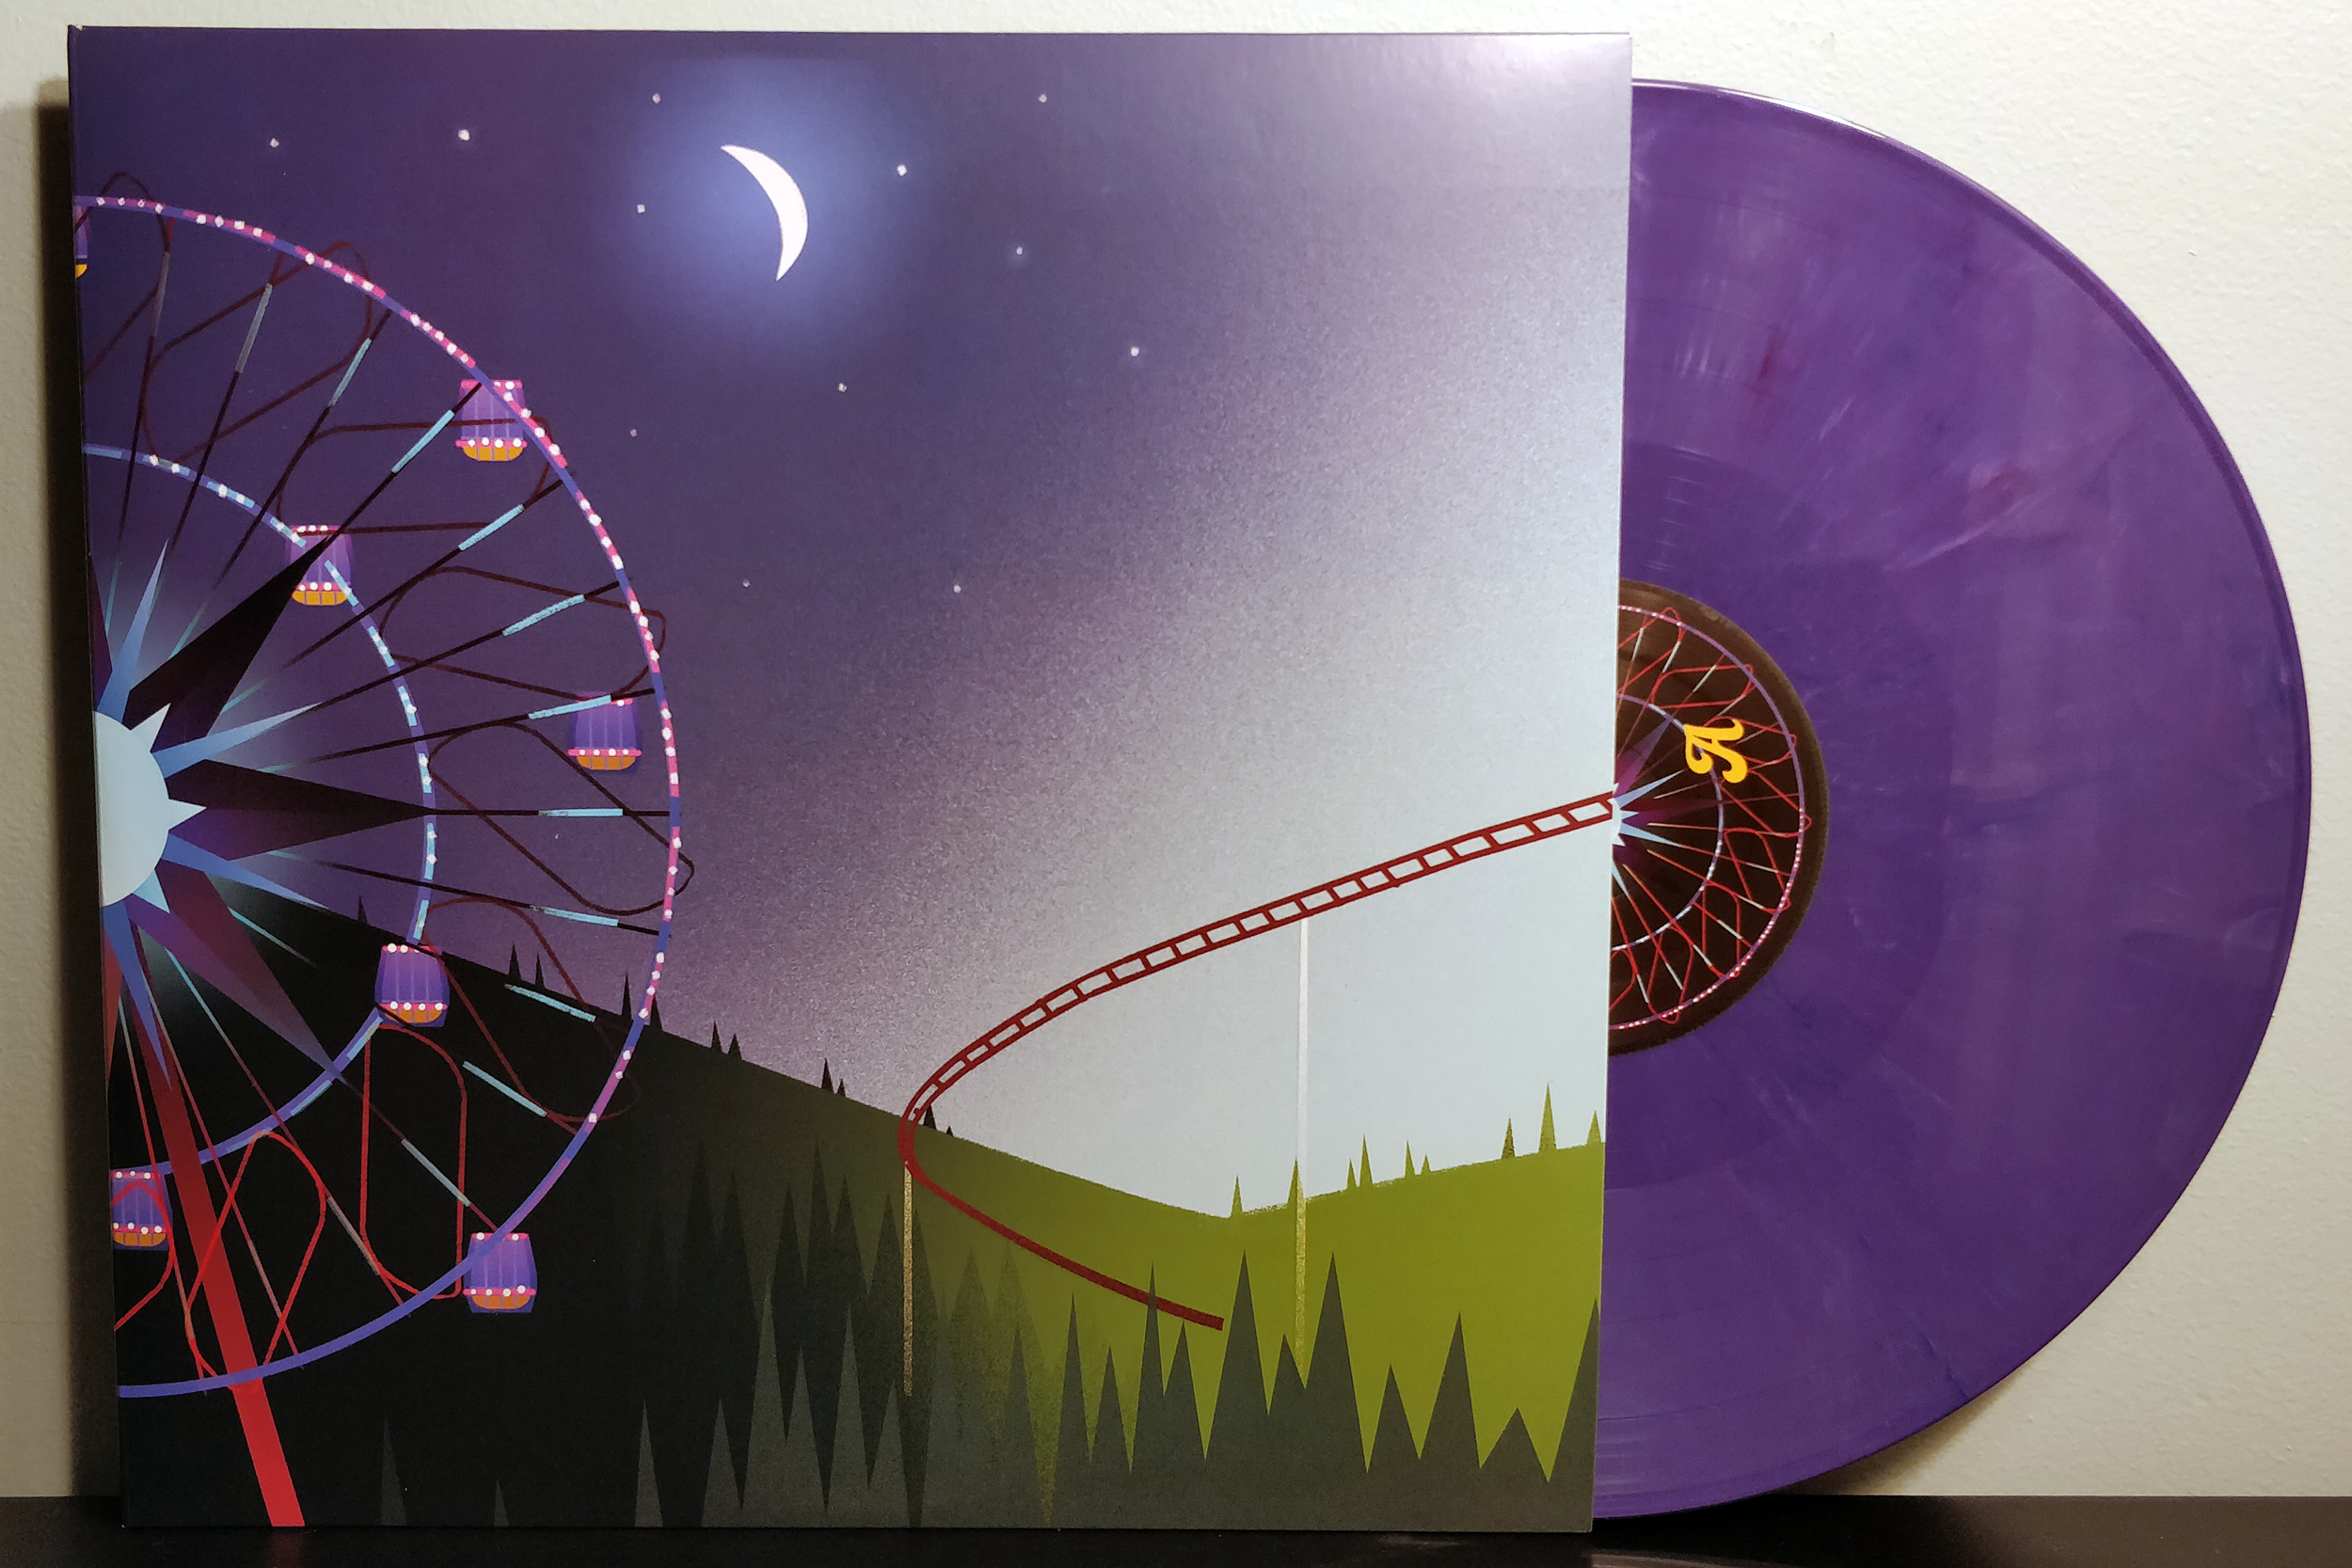 "You, Me & Gravity: The Music of Planet Coaster by Jim Guthrie & JJ Ipsen pressed on ""Day Turns to Night"" vinyl by iam8bit"